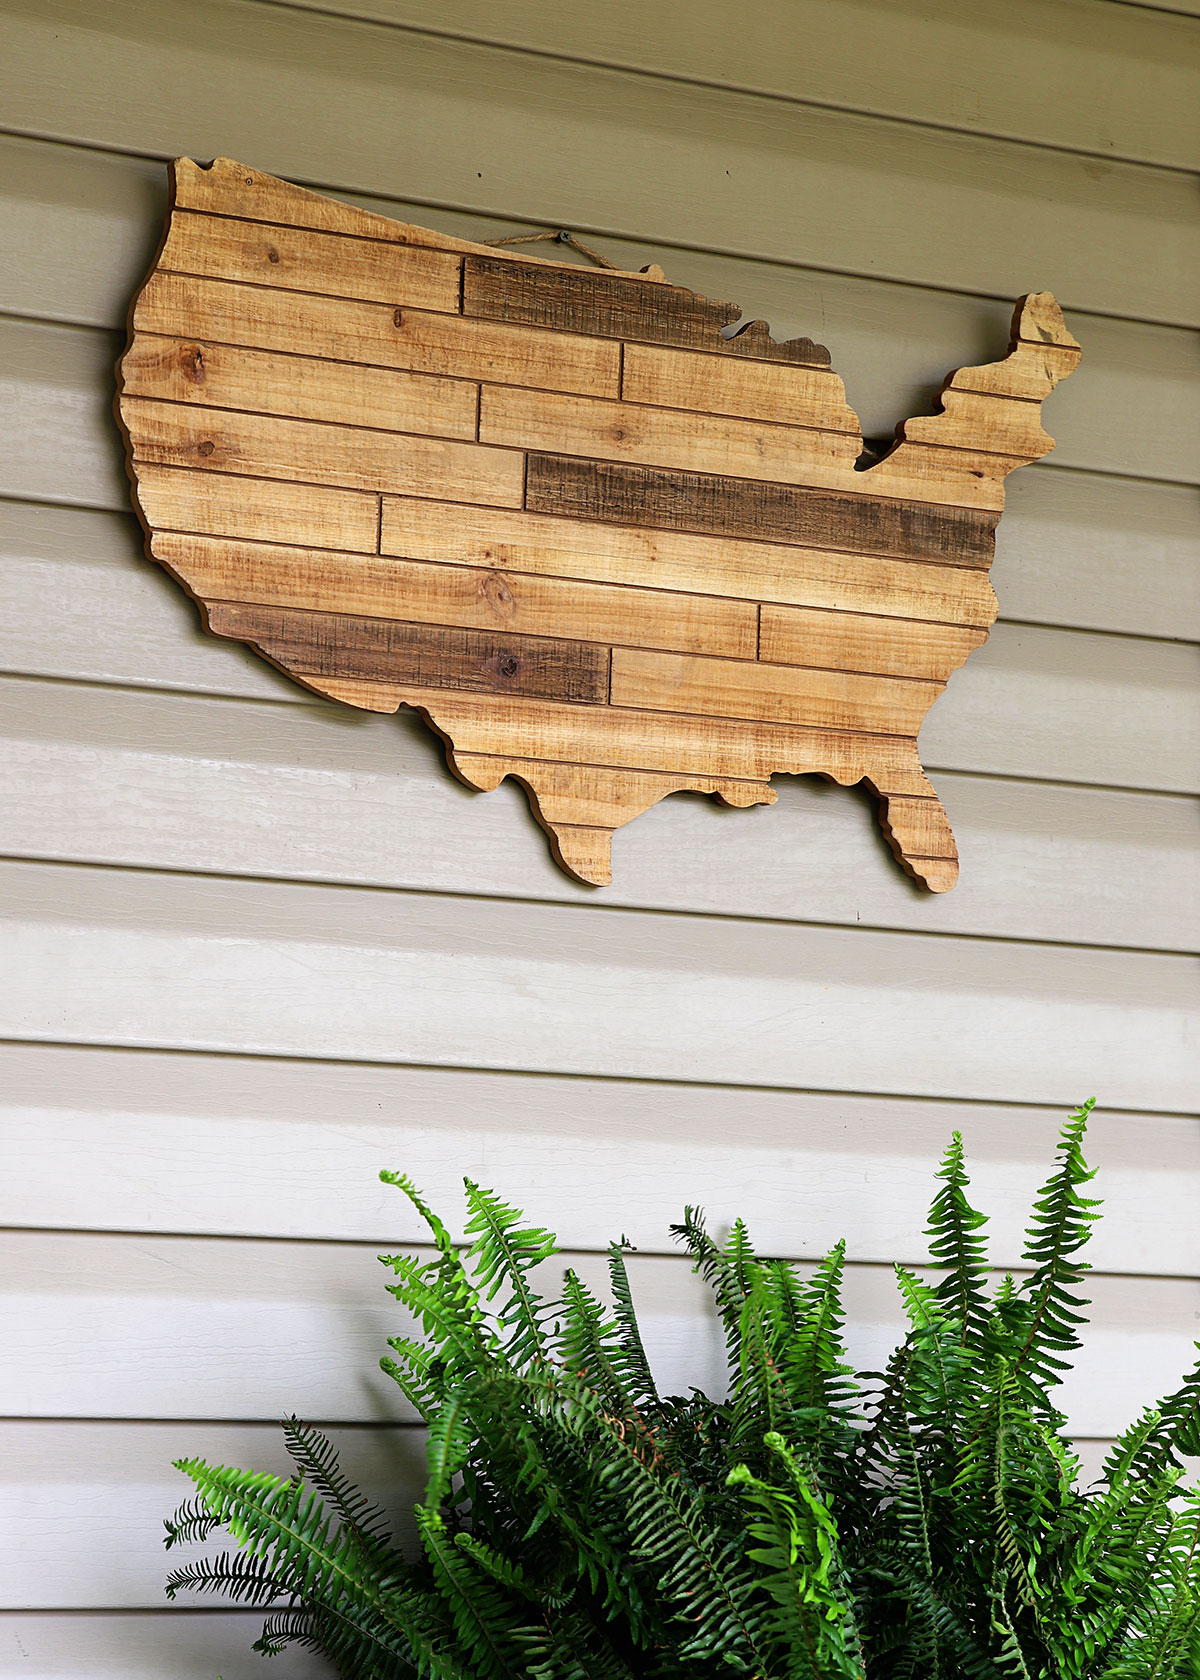 Wooden wall hanging in the shape of the United States.